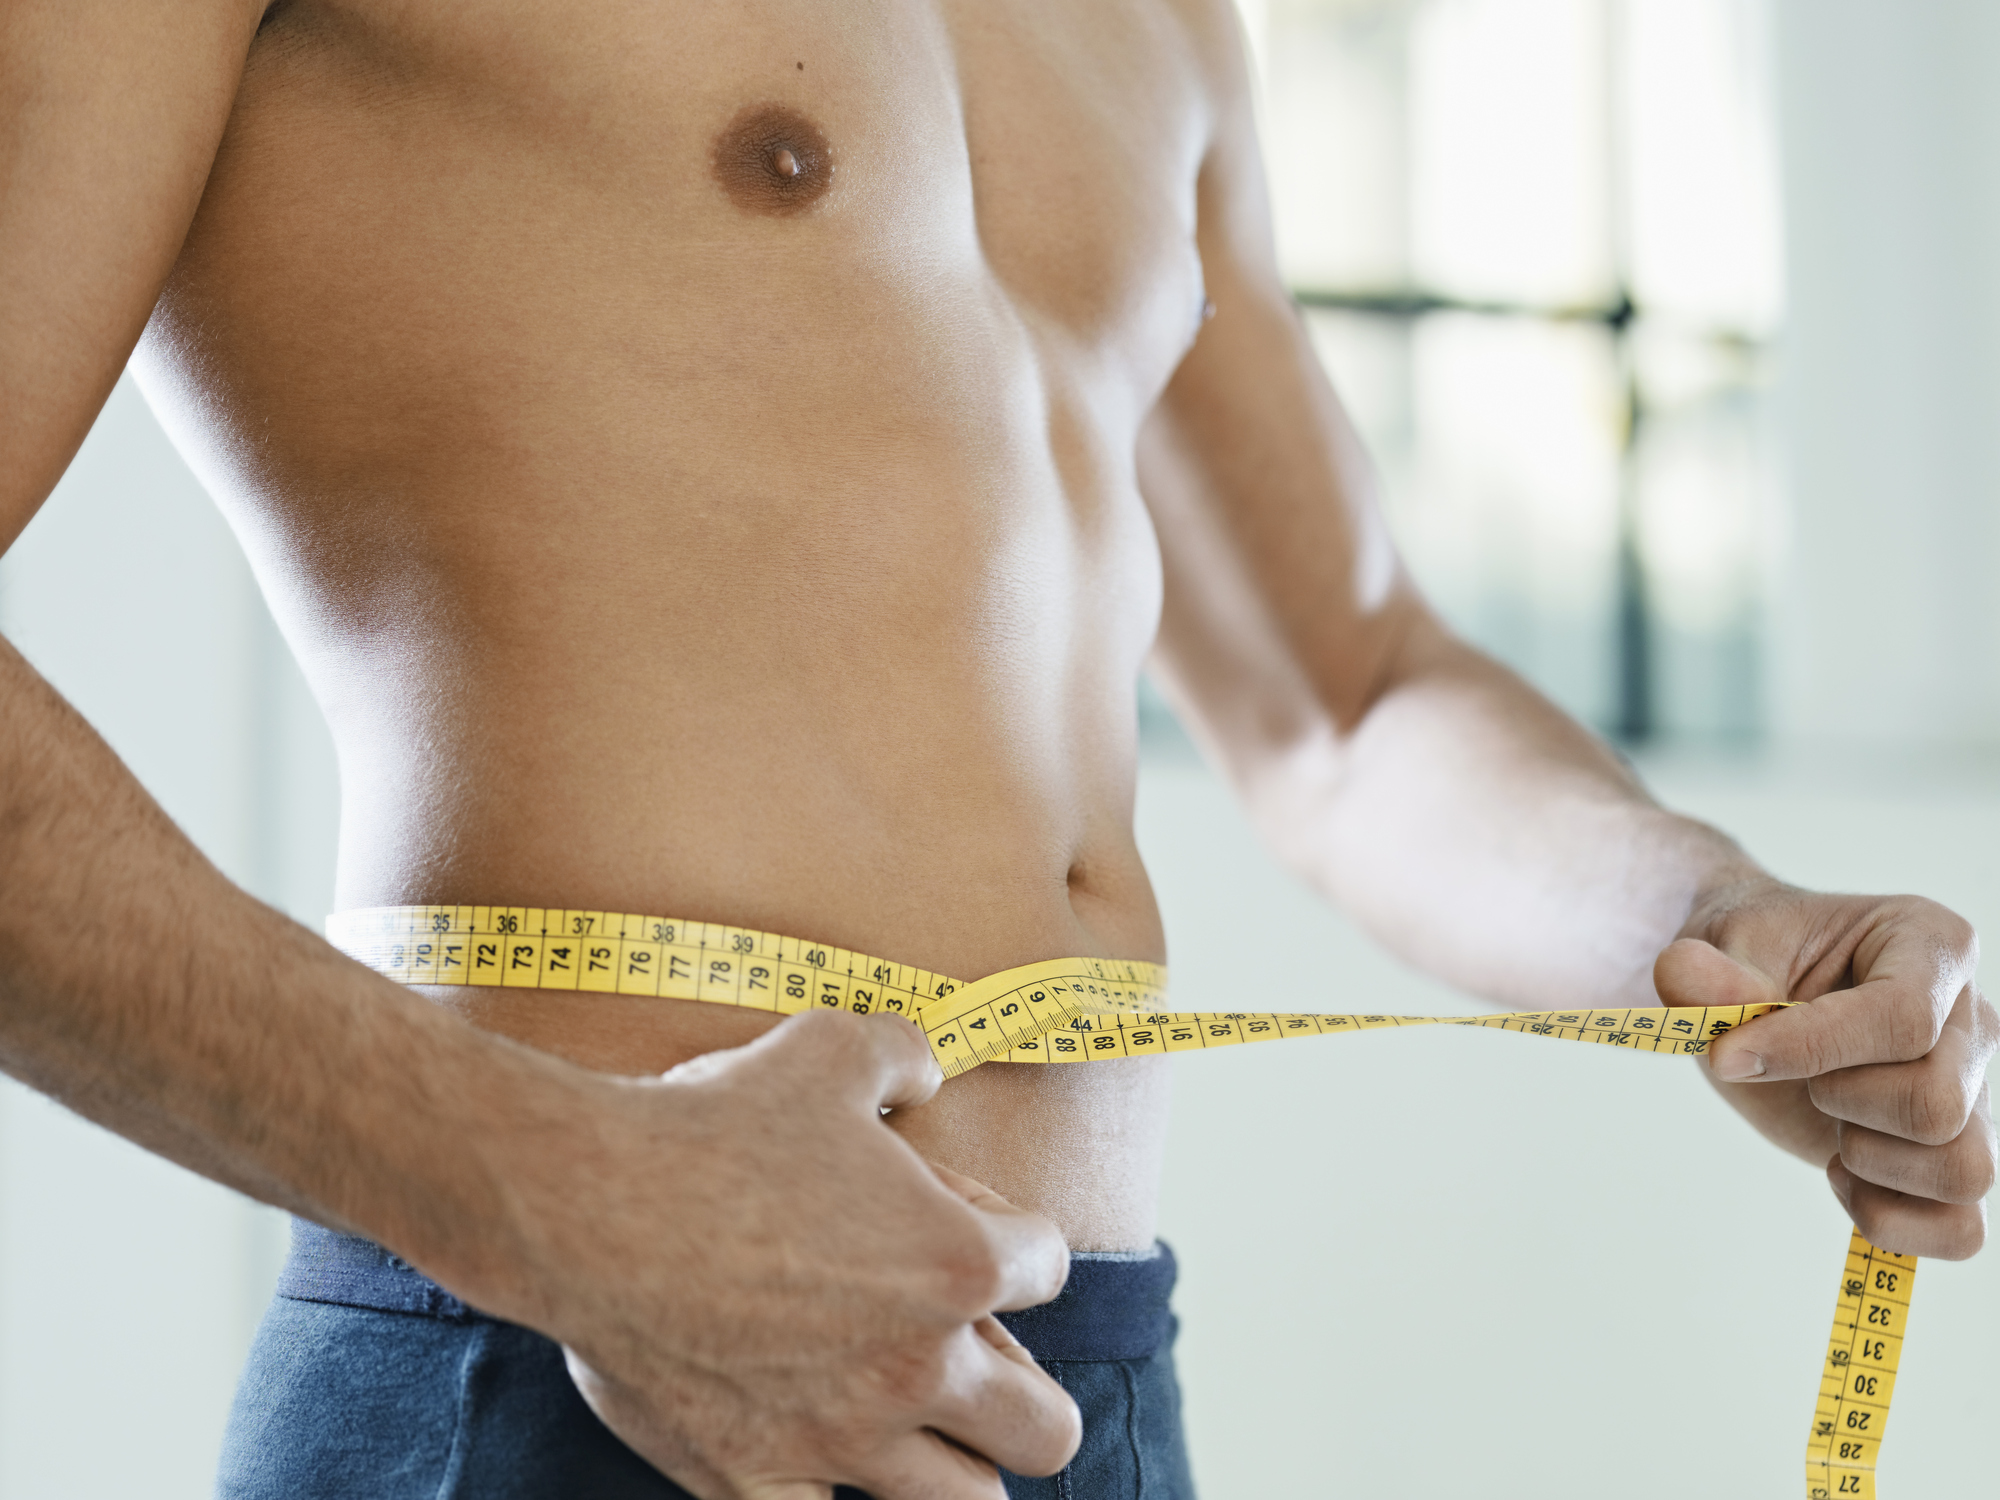 SculpSure Treatment for Men: Non-Invasive Fat Reduction